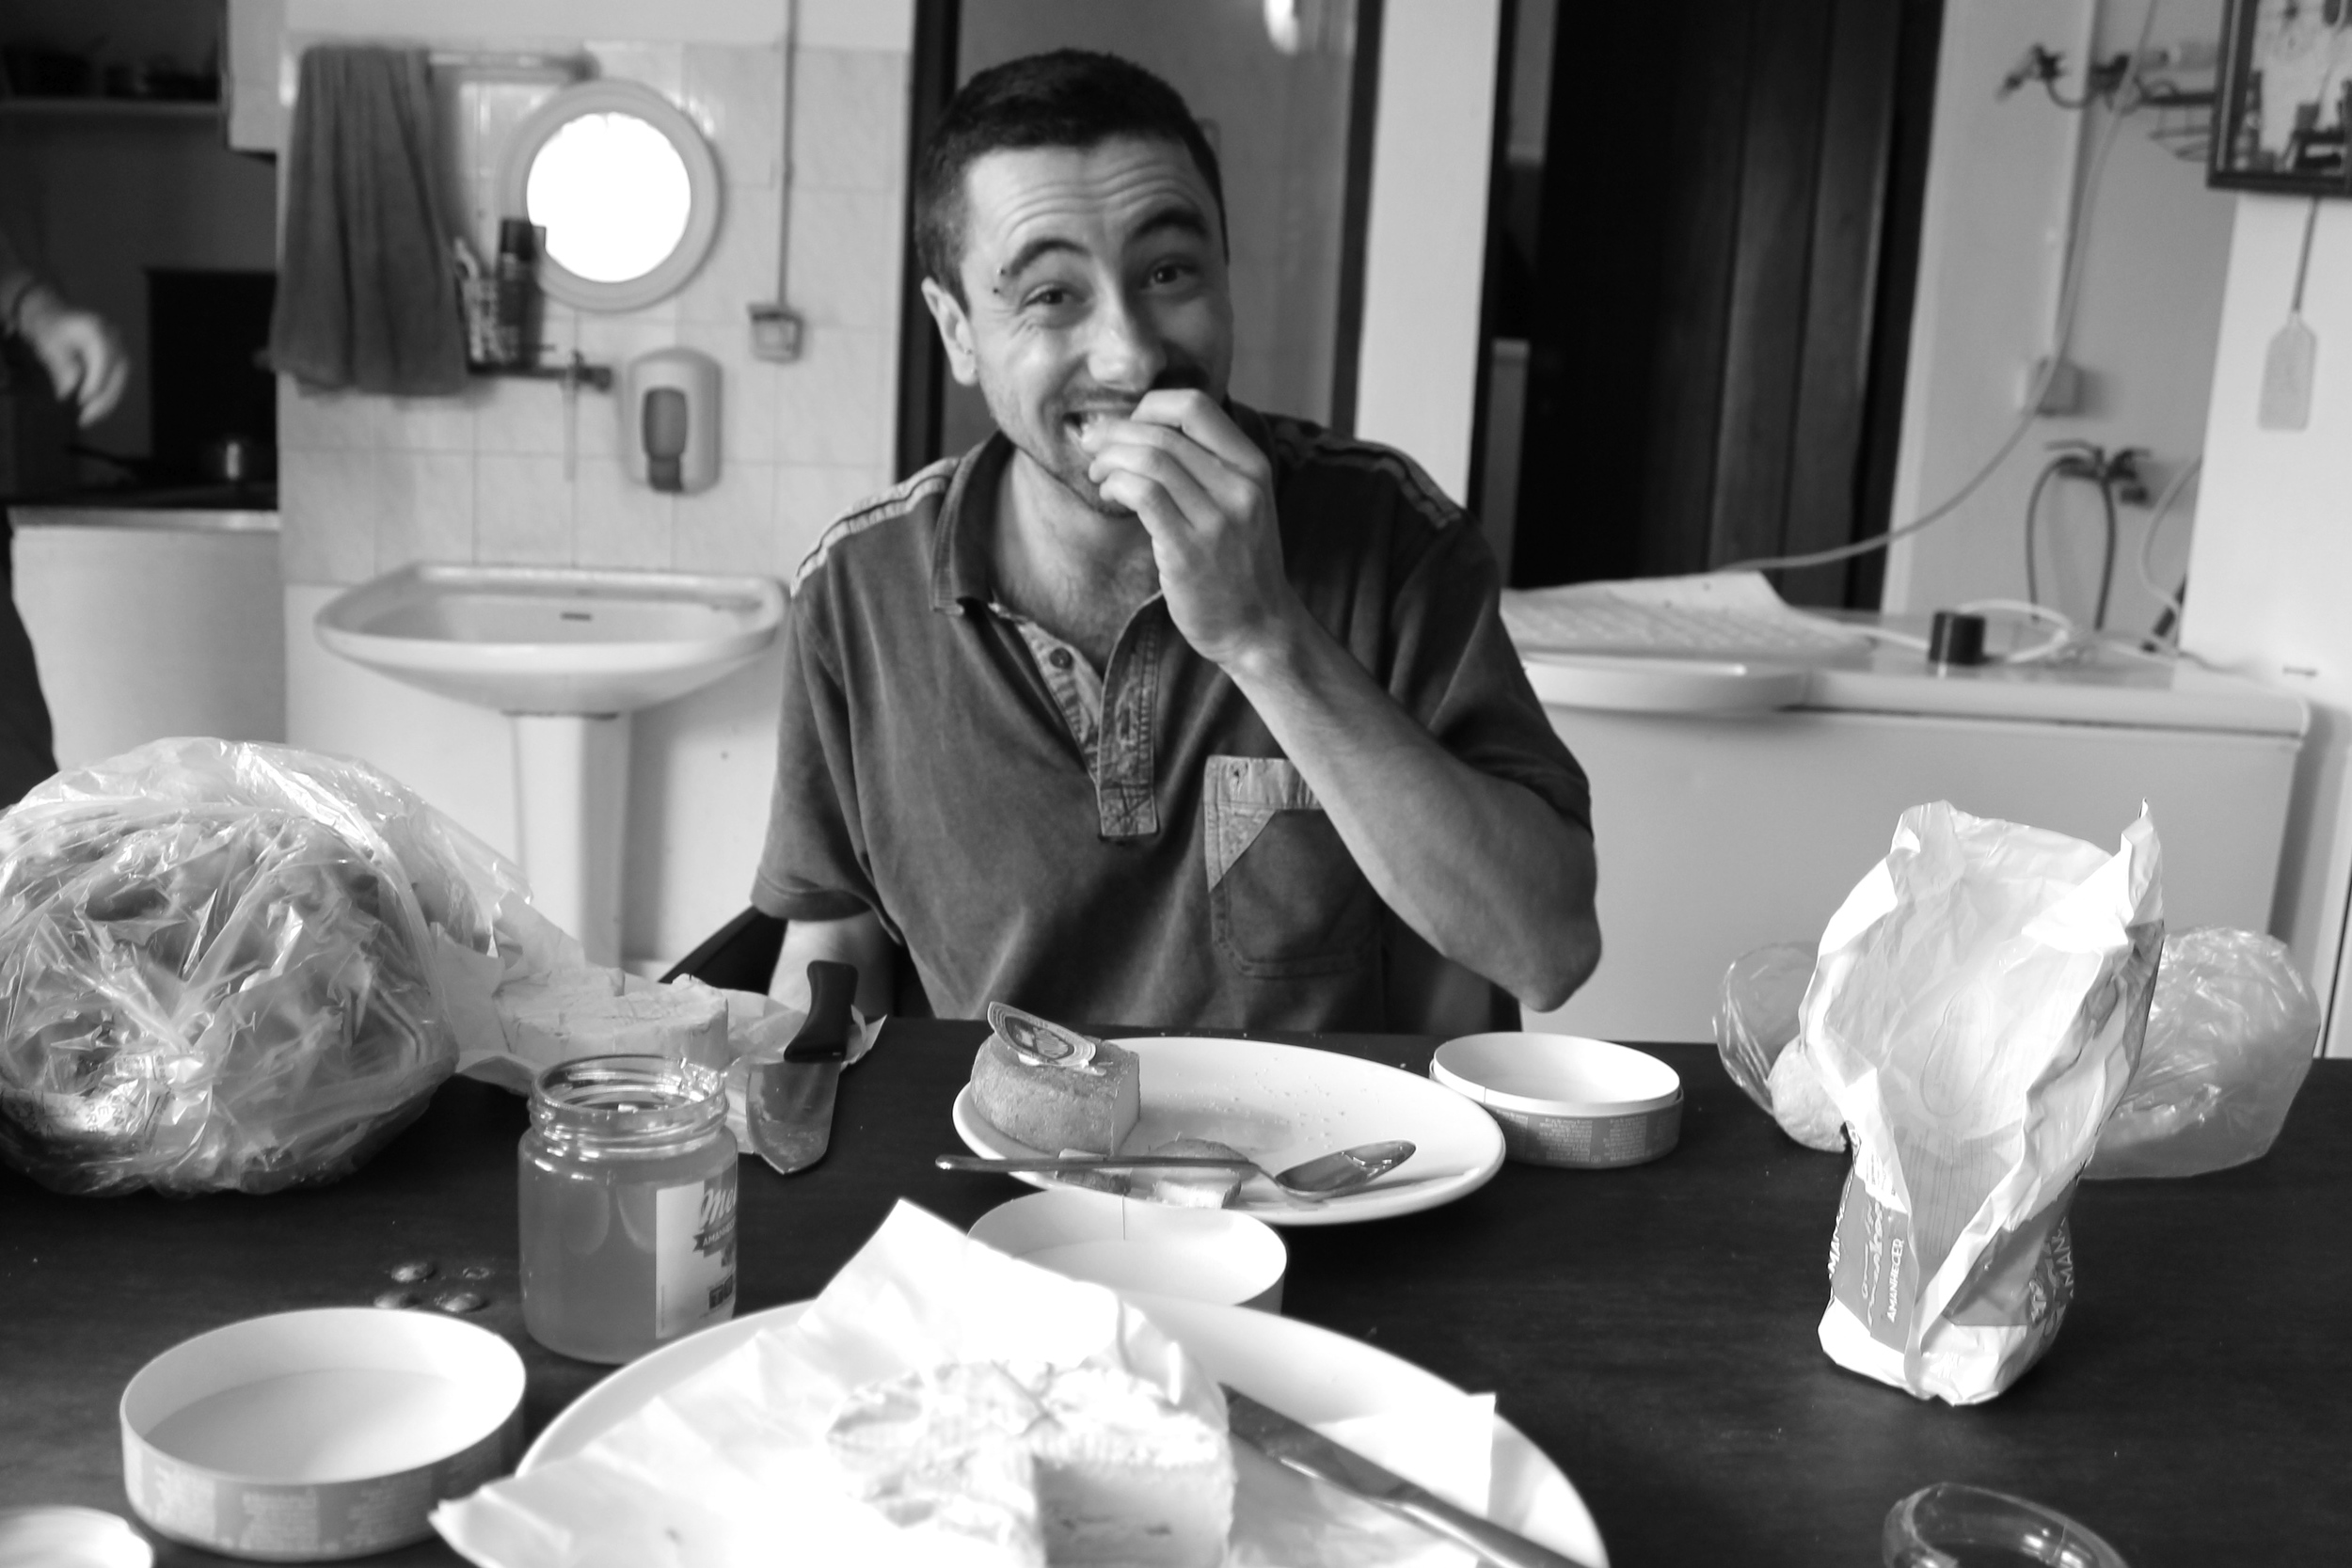 Olivier, the Frenchman who taught me the wonder of camembert and honey for breakfast.